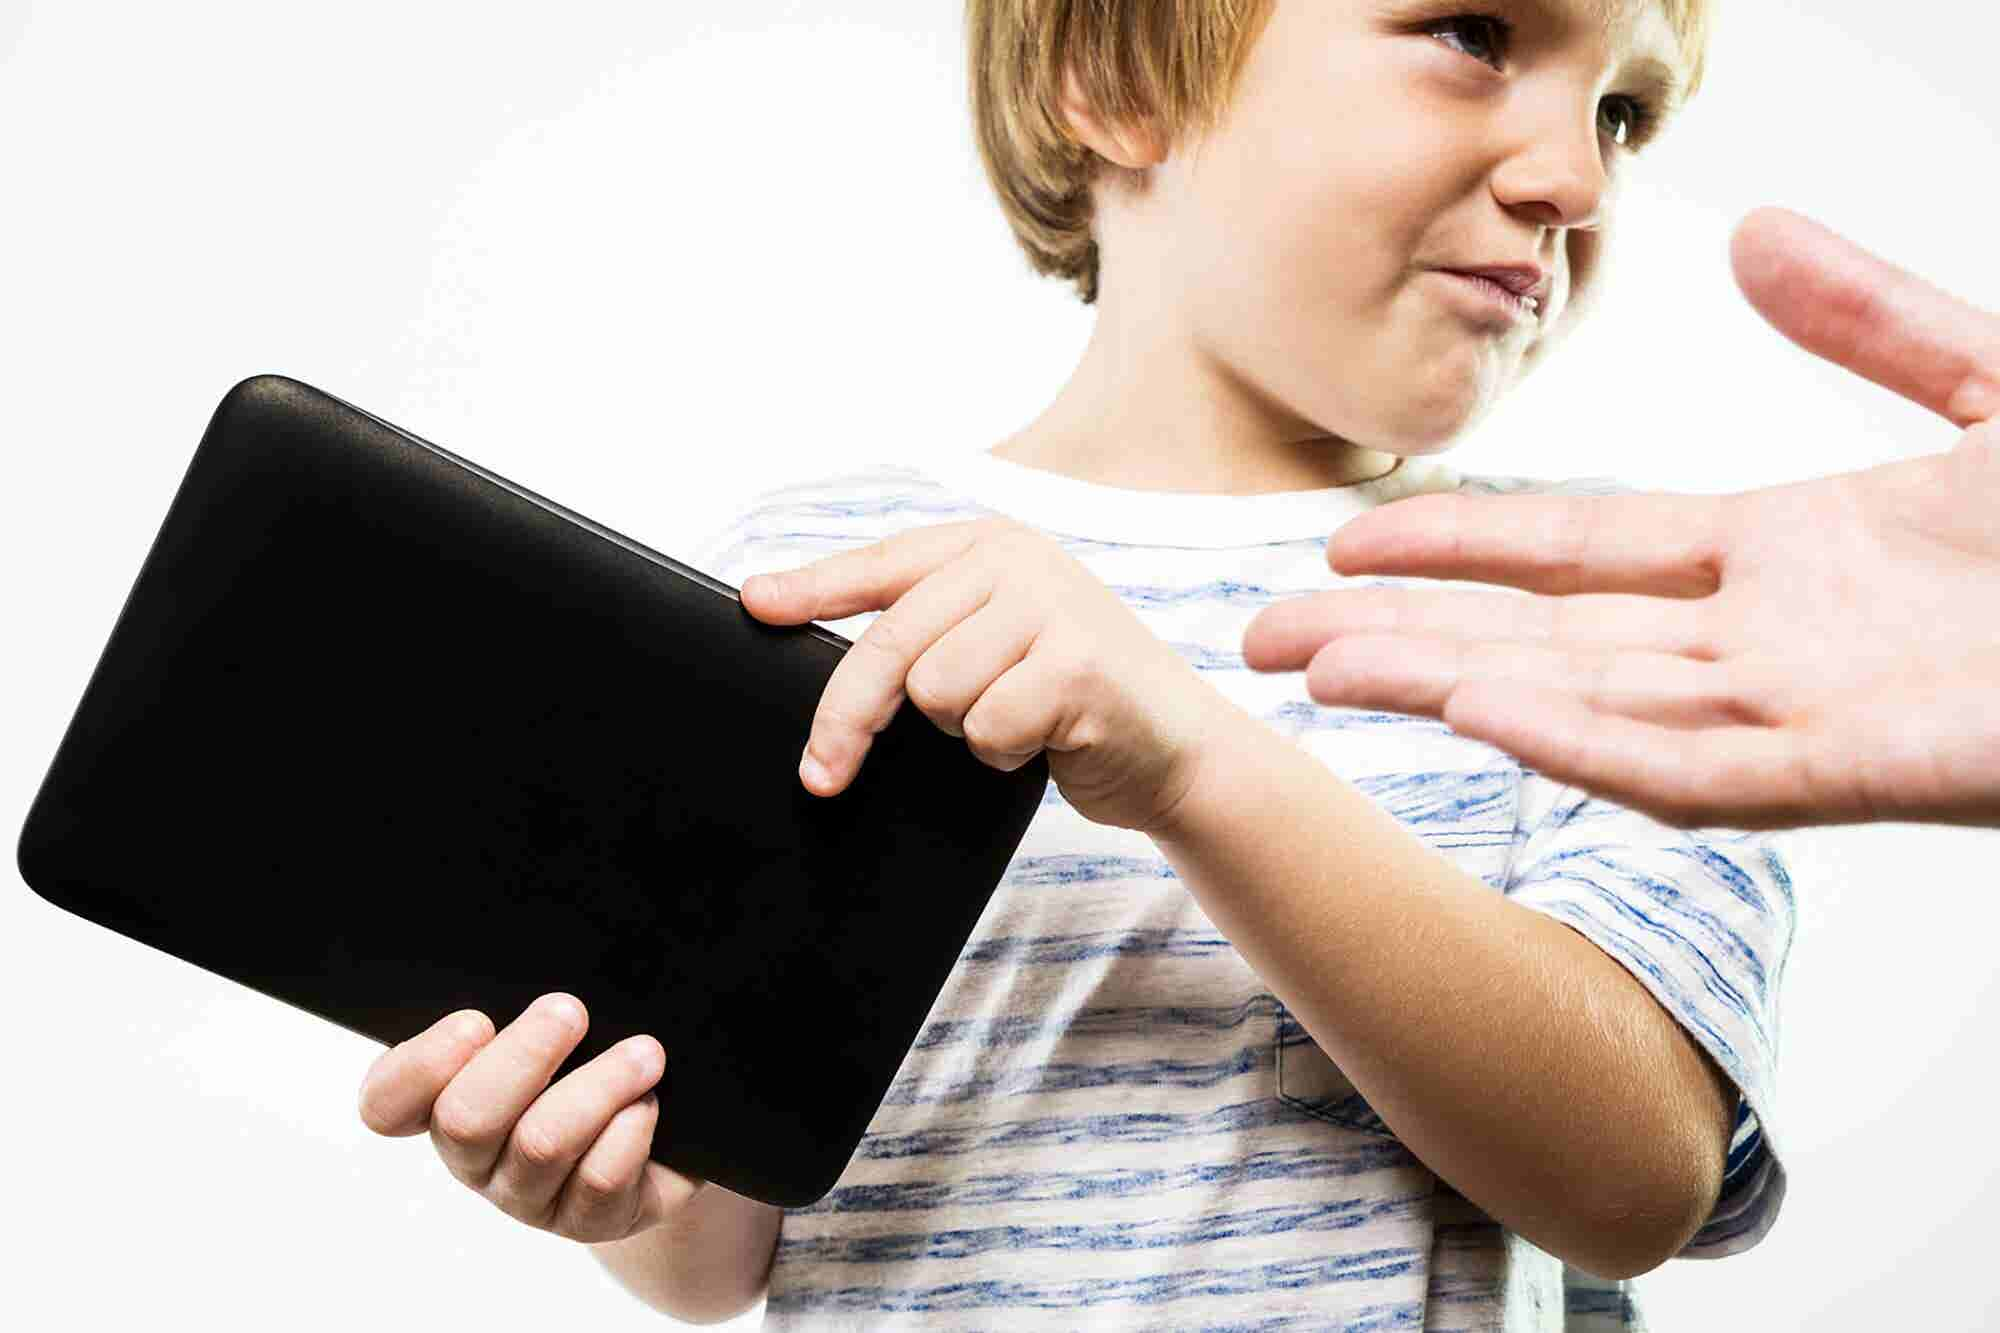 Am I a Hypocrite If I Shield My Child From the Digital Tools I Help Cr...